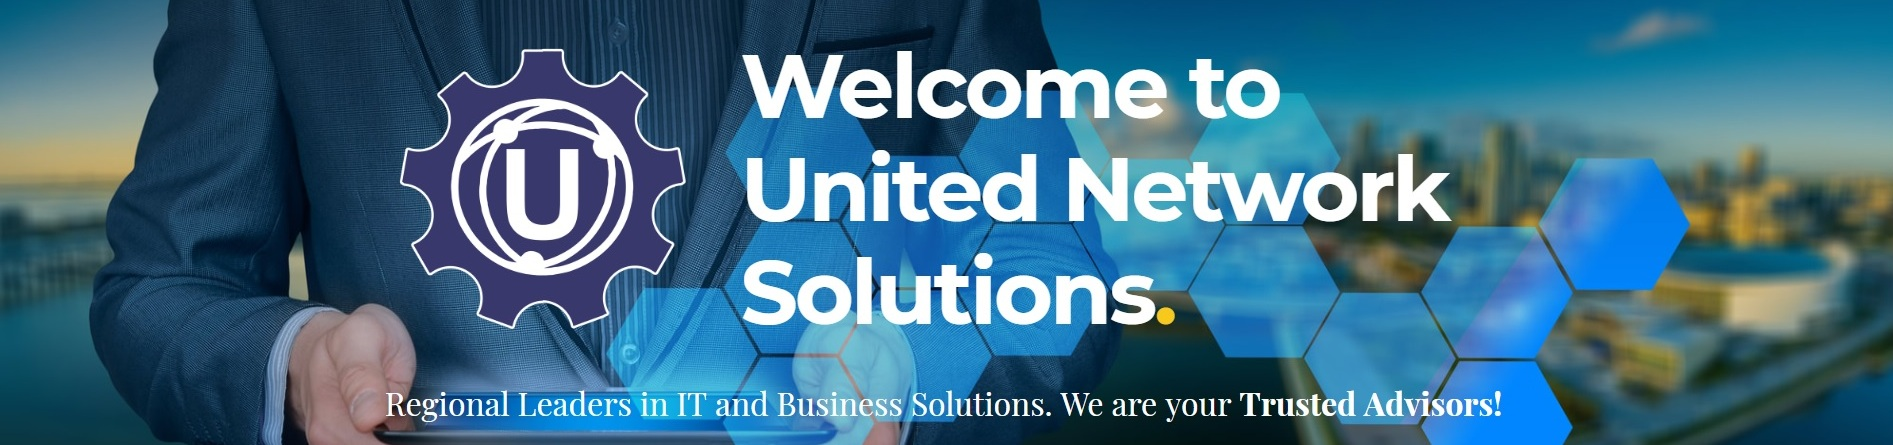 United Network Solutions LTD